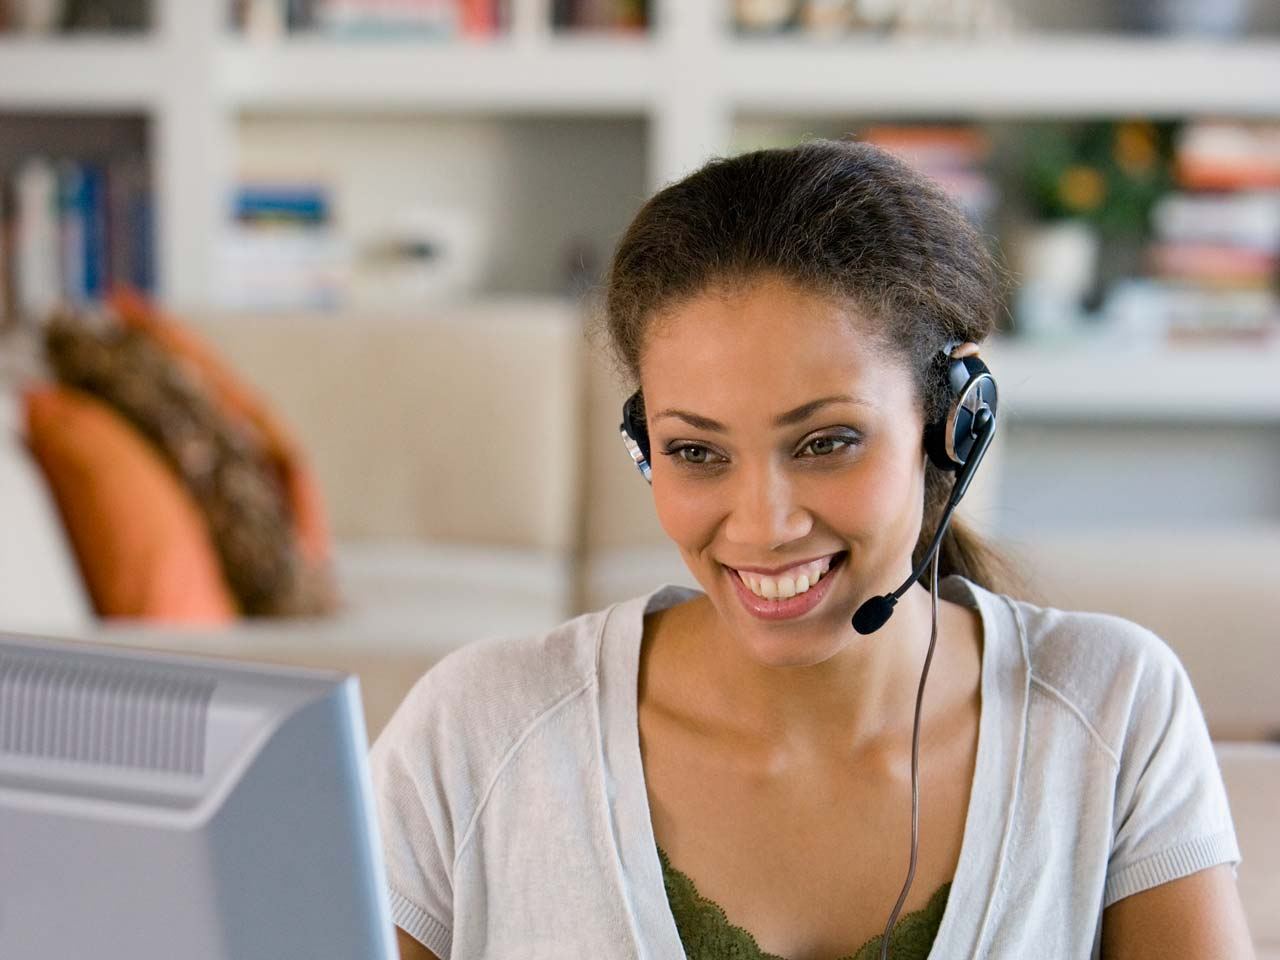 Female working from home with headset on.